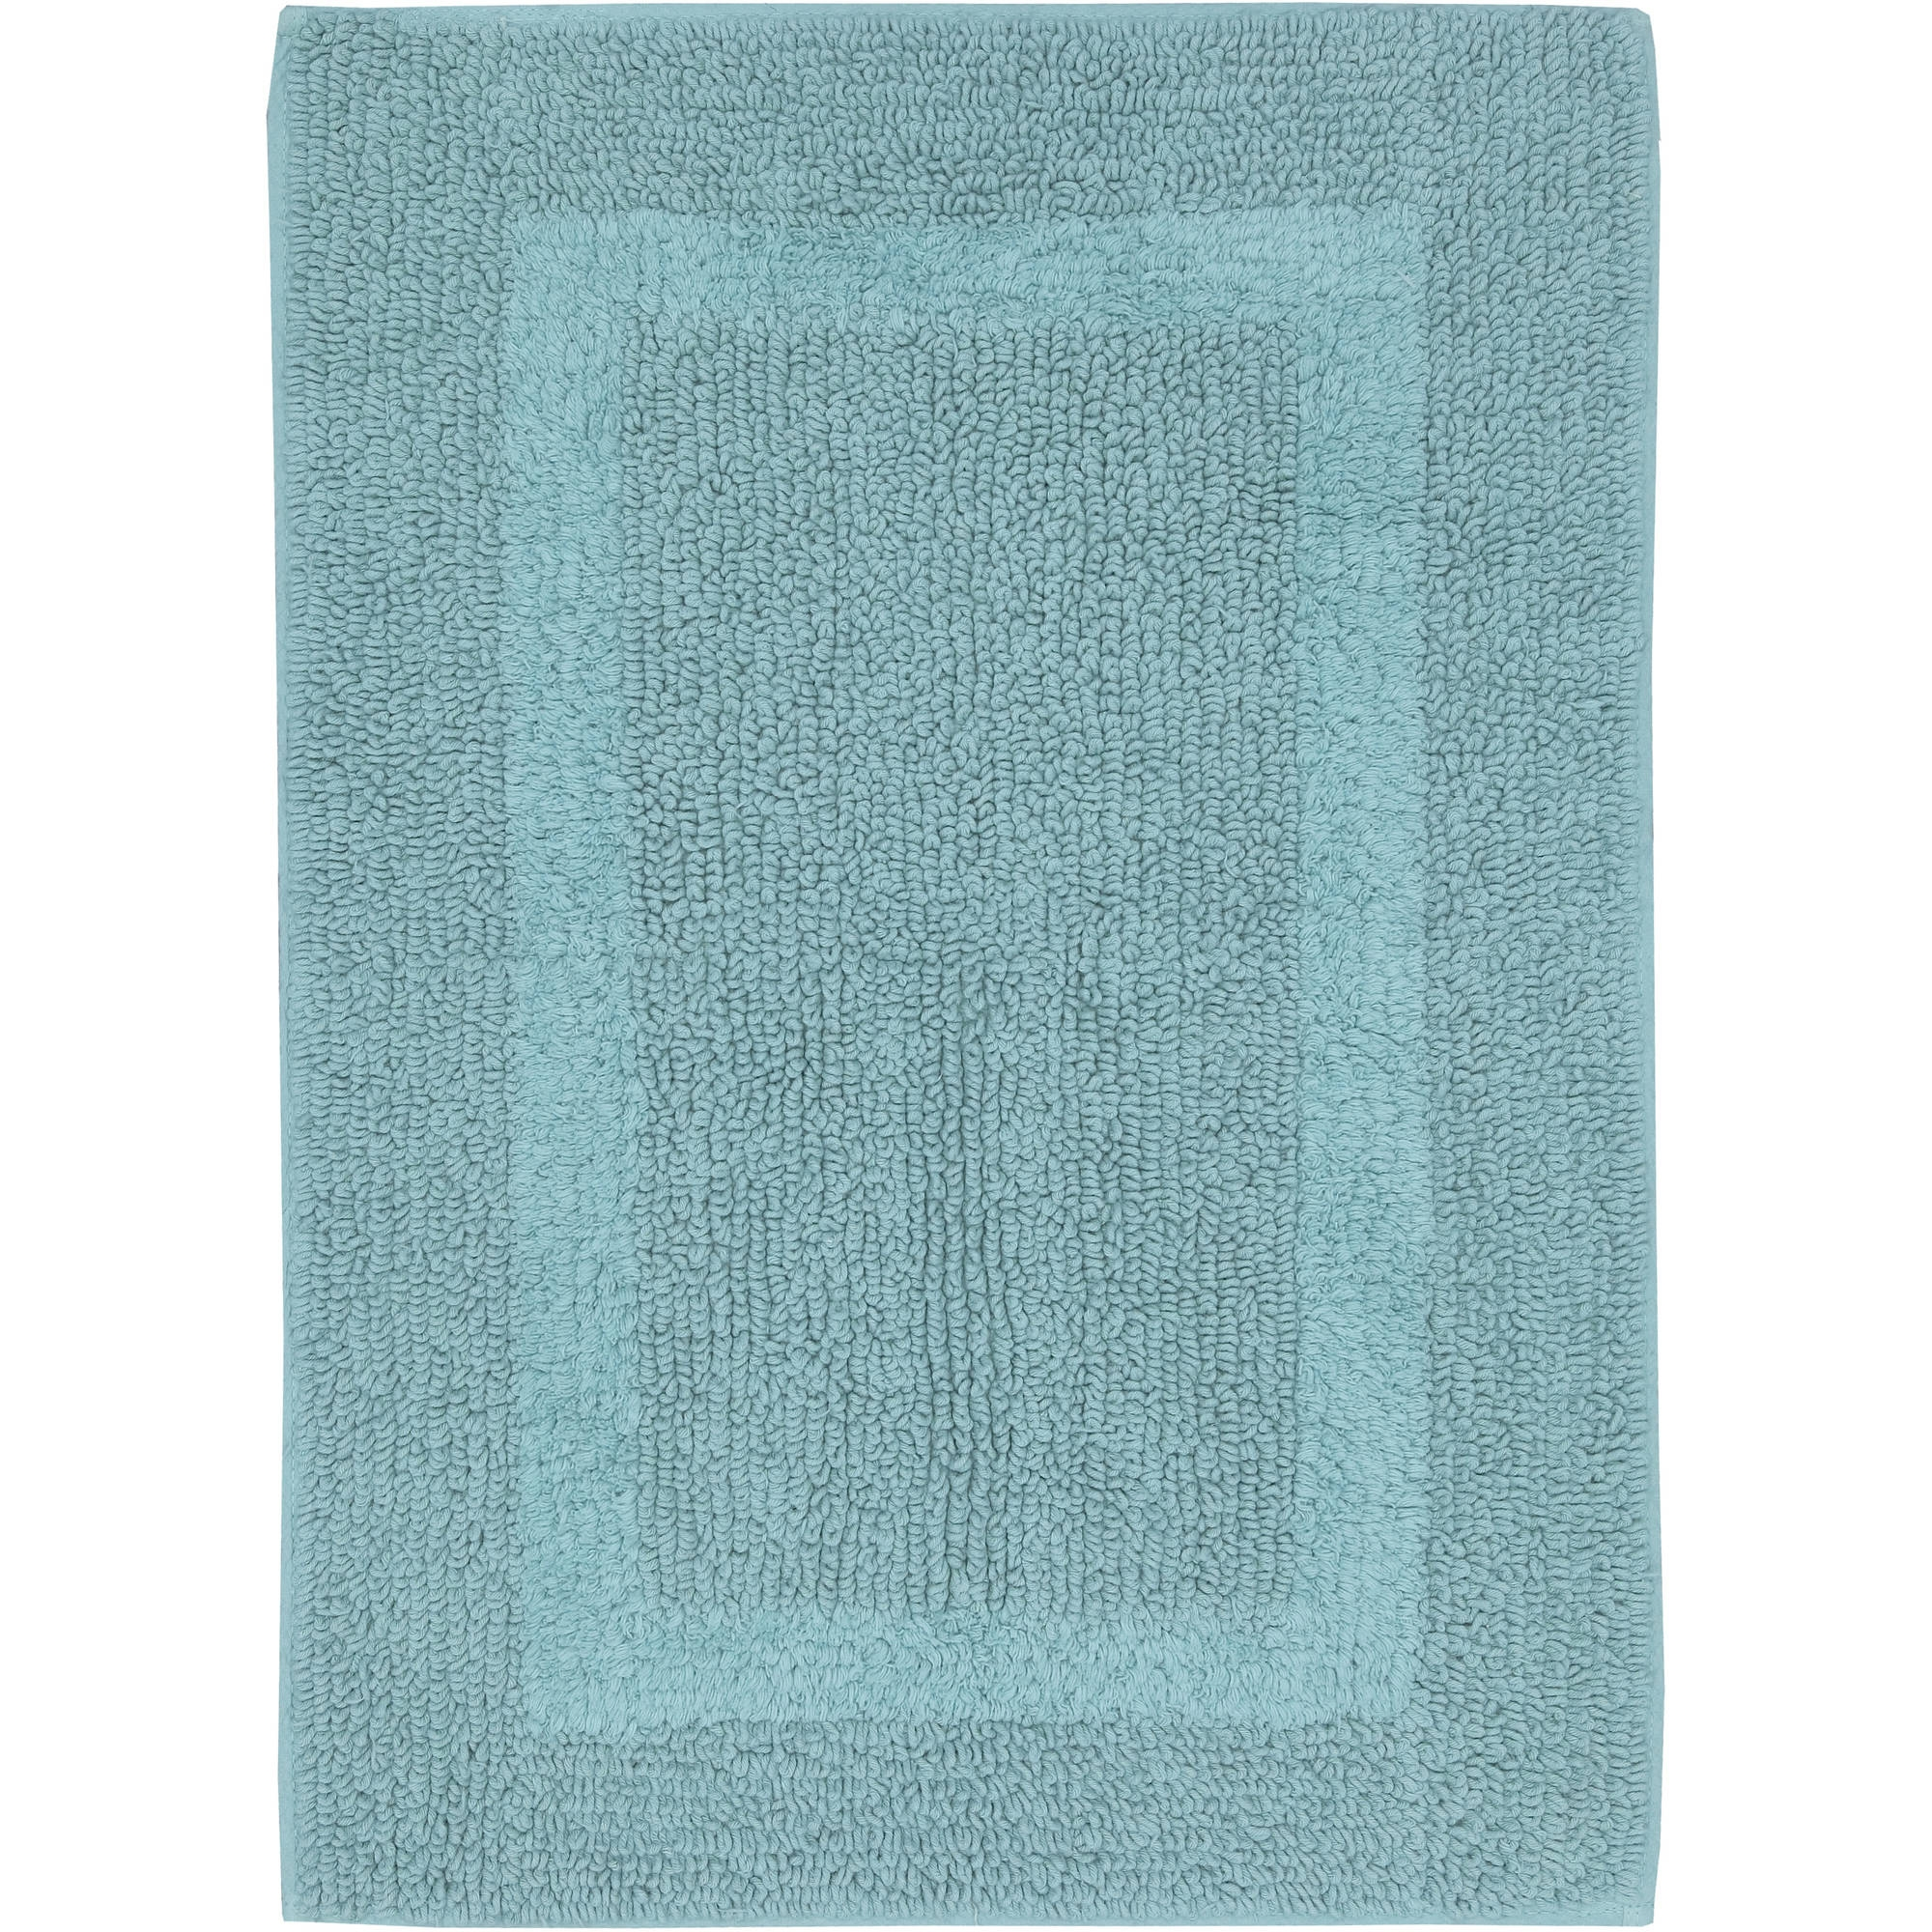 Day Spa Bathroom Rugs